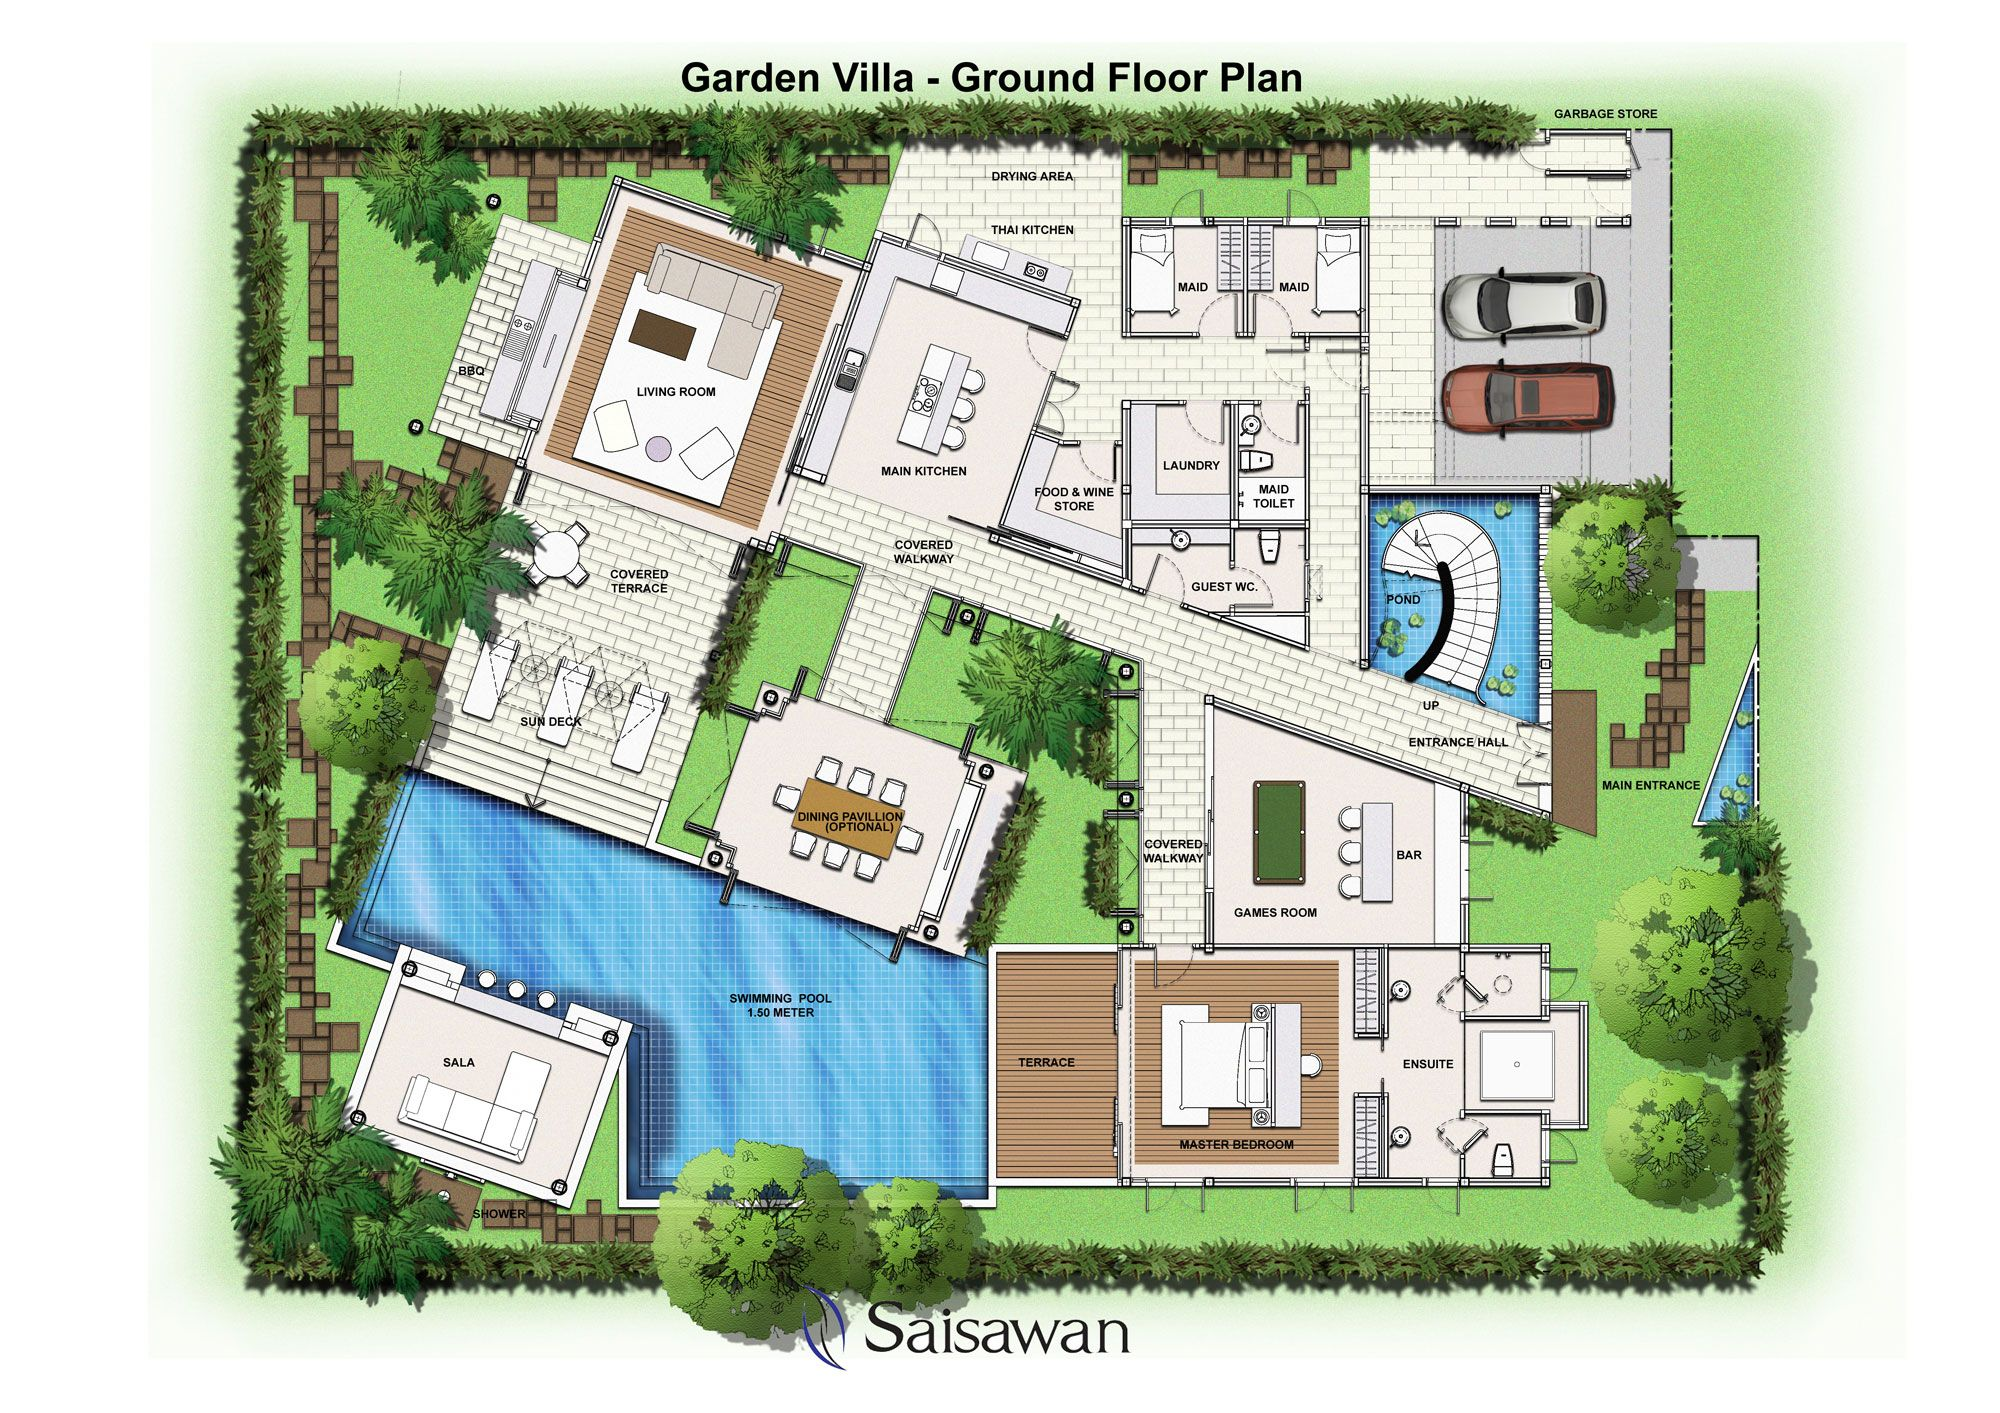 The gardens floor plan thefloors co for Garden floor design